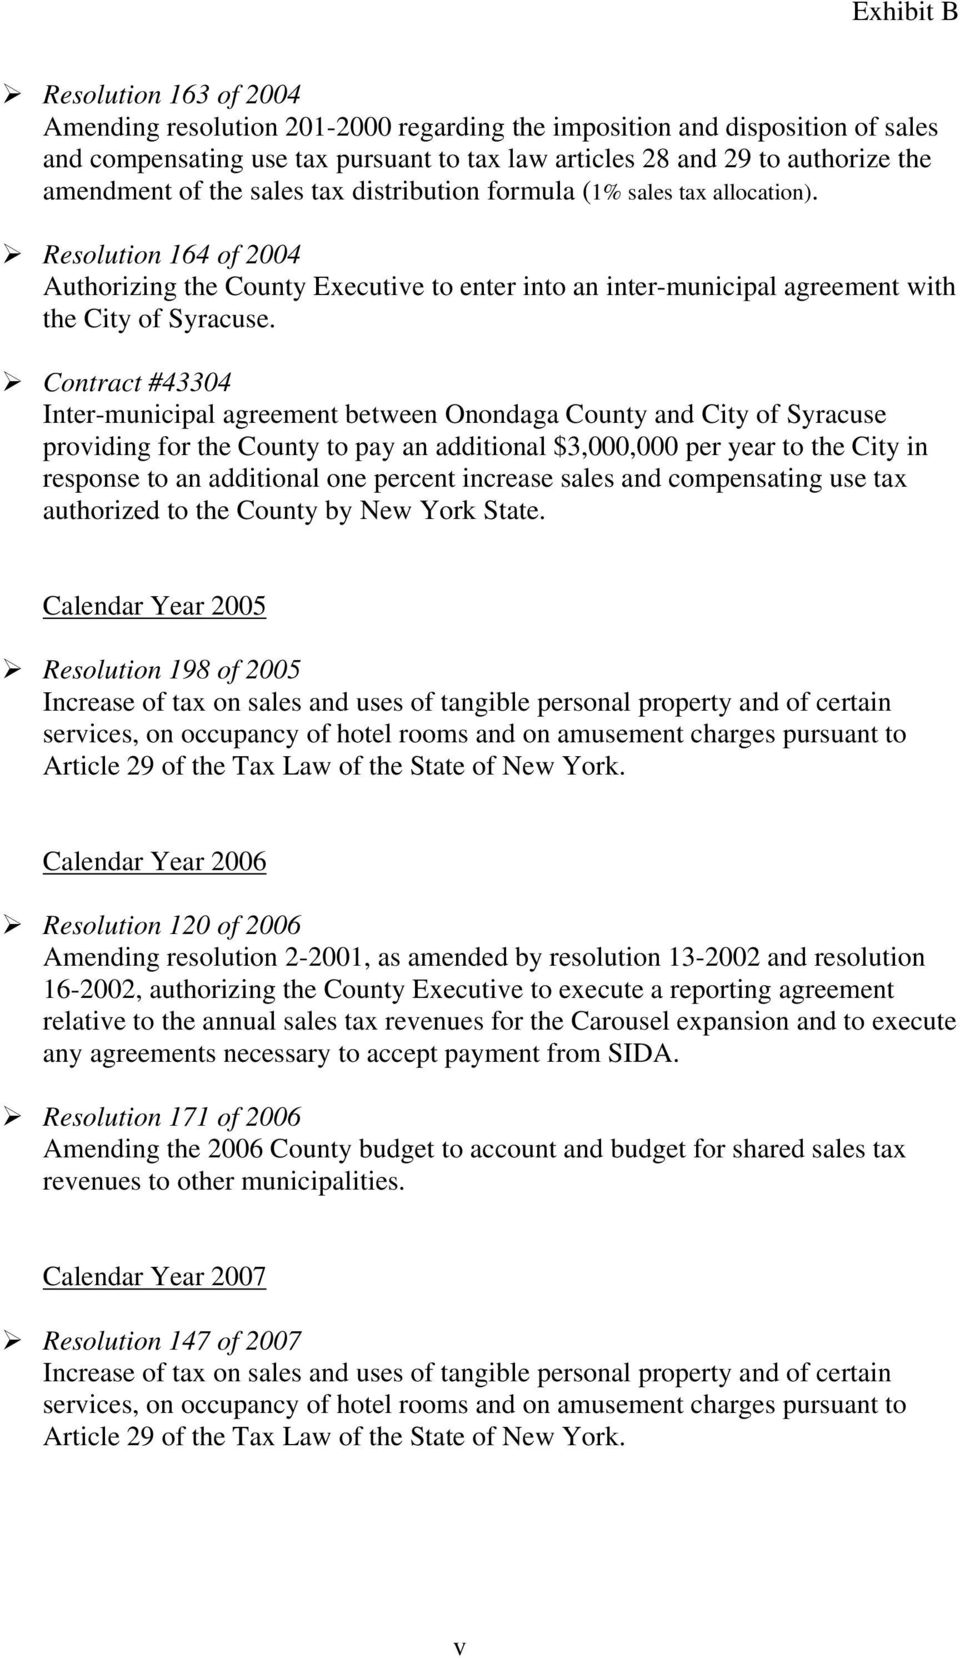 Contract #43304 Inter-municipal agreement between Onondaga County and City of Syracuse providing for the County to pay an additional $3,000,000 per year to the City in response to an additional one